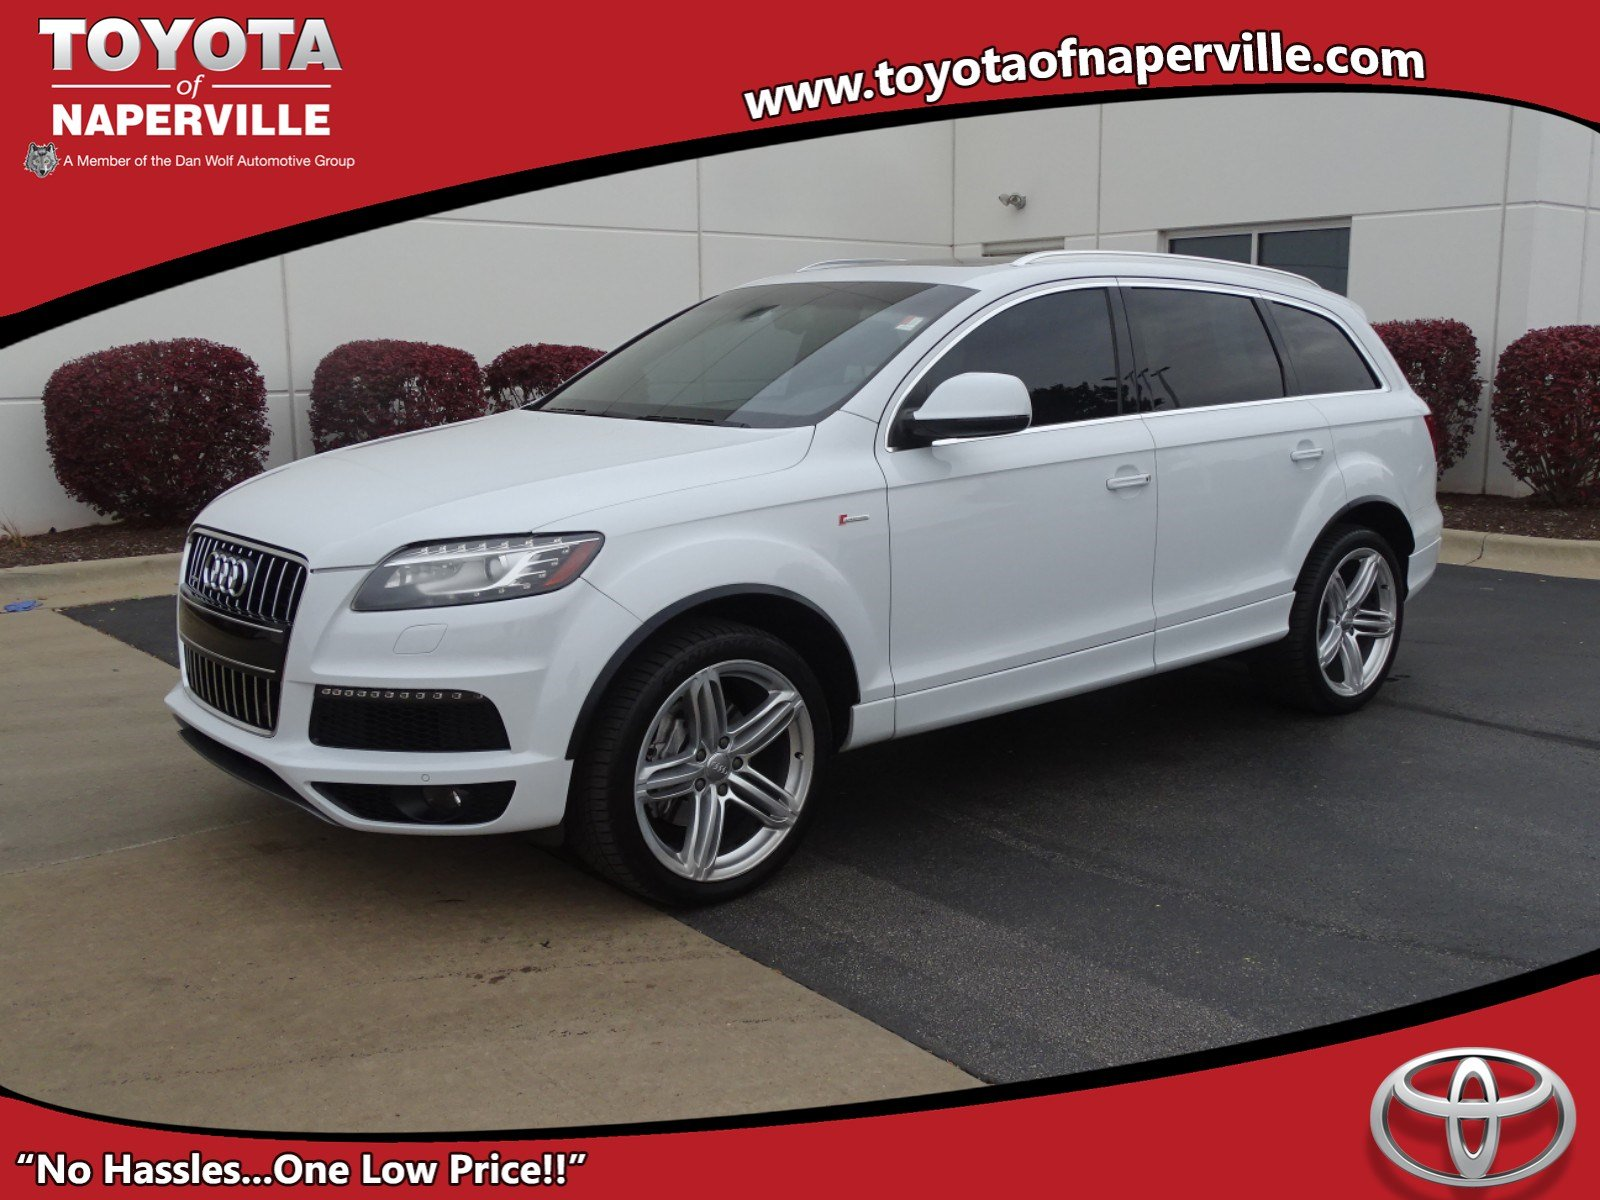 Pre Owned 2012 Audi Q7 3 0T S line Prestige 4D Sport Utility in